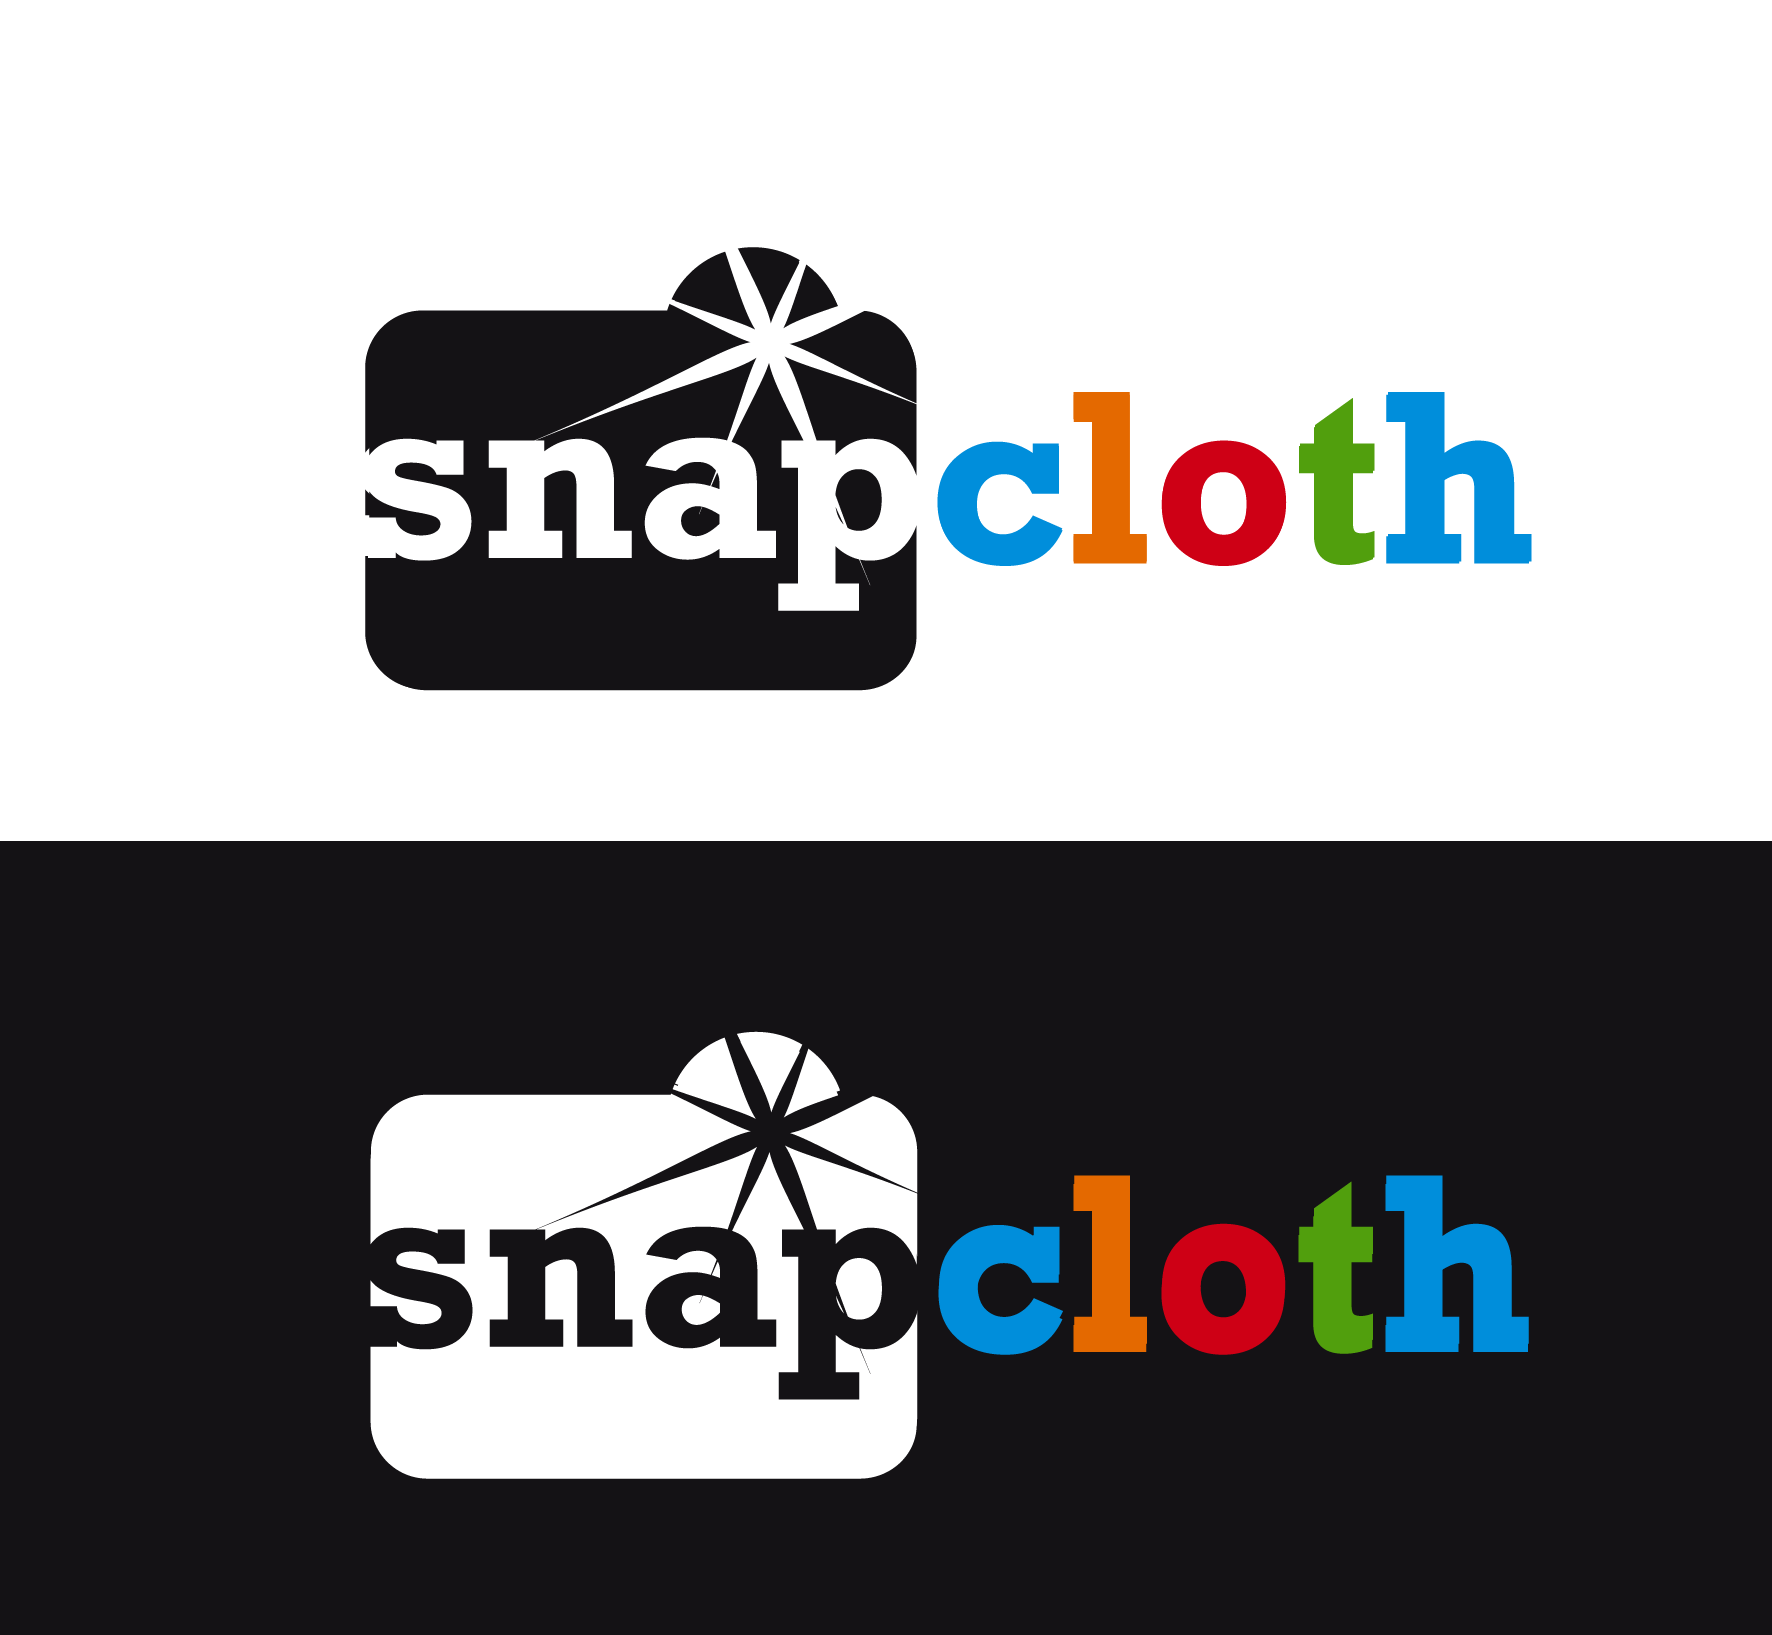 Logo Design by luna - Entry No. 54 in the Logo Design Contest Snapcloth Logo Design.